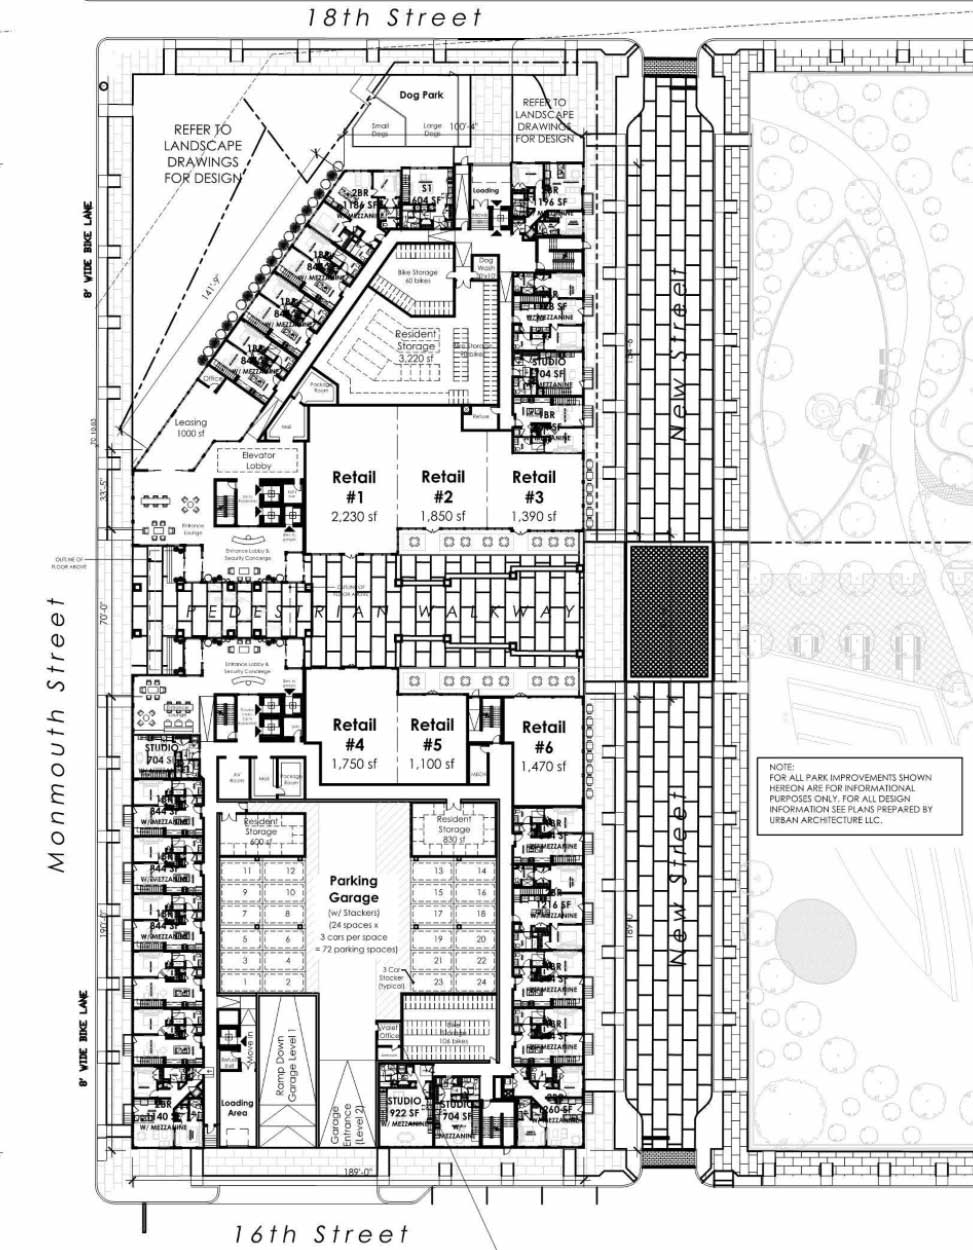 305 Coles Street Jersey City Retail Site Plan